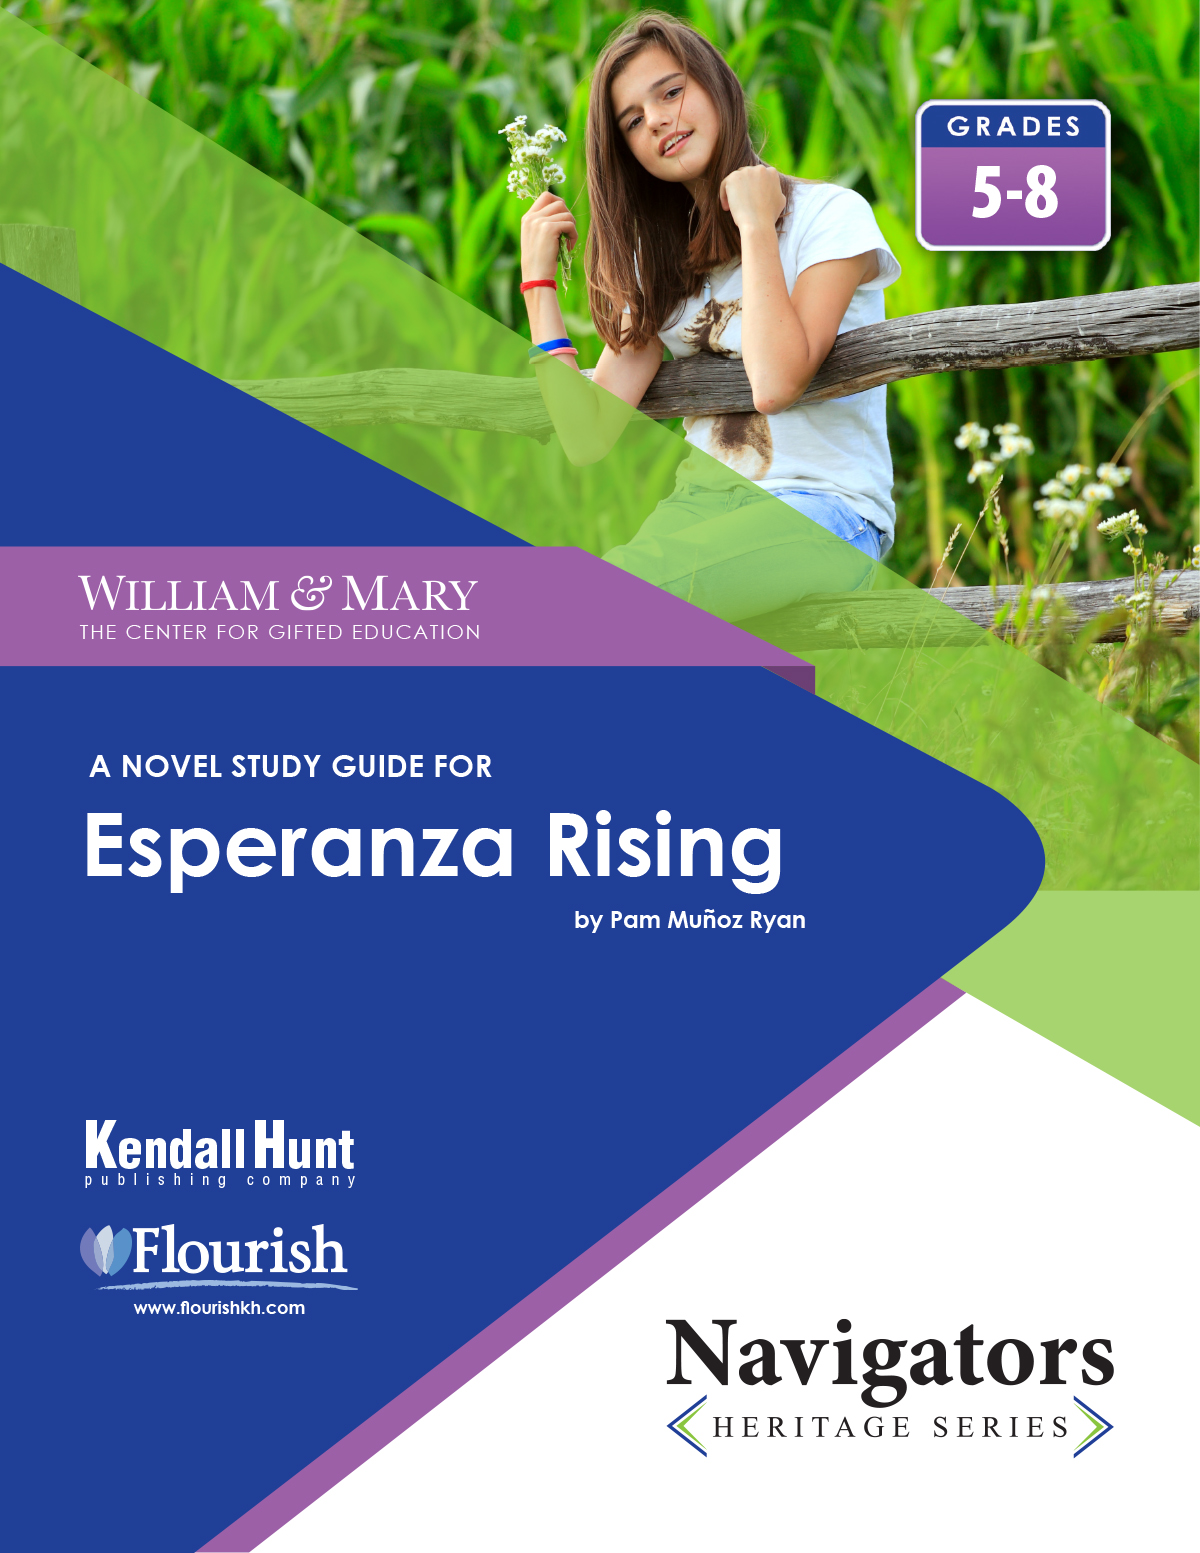 William & Mary Navigator Esperanza Rising